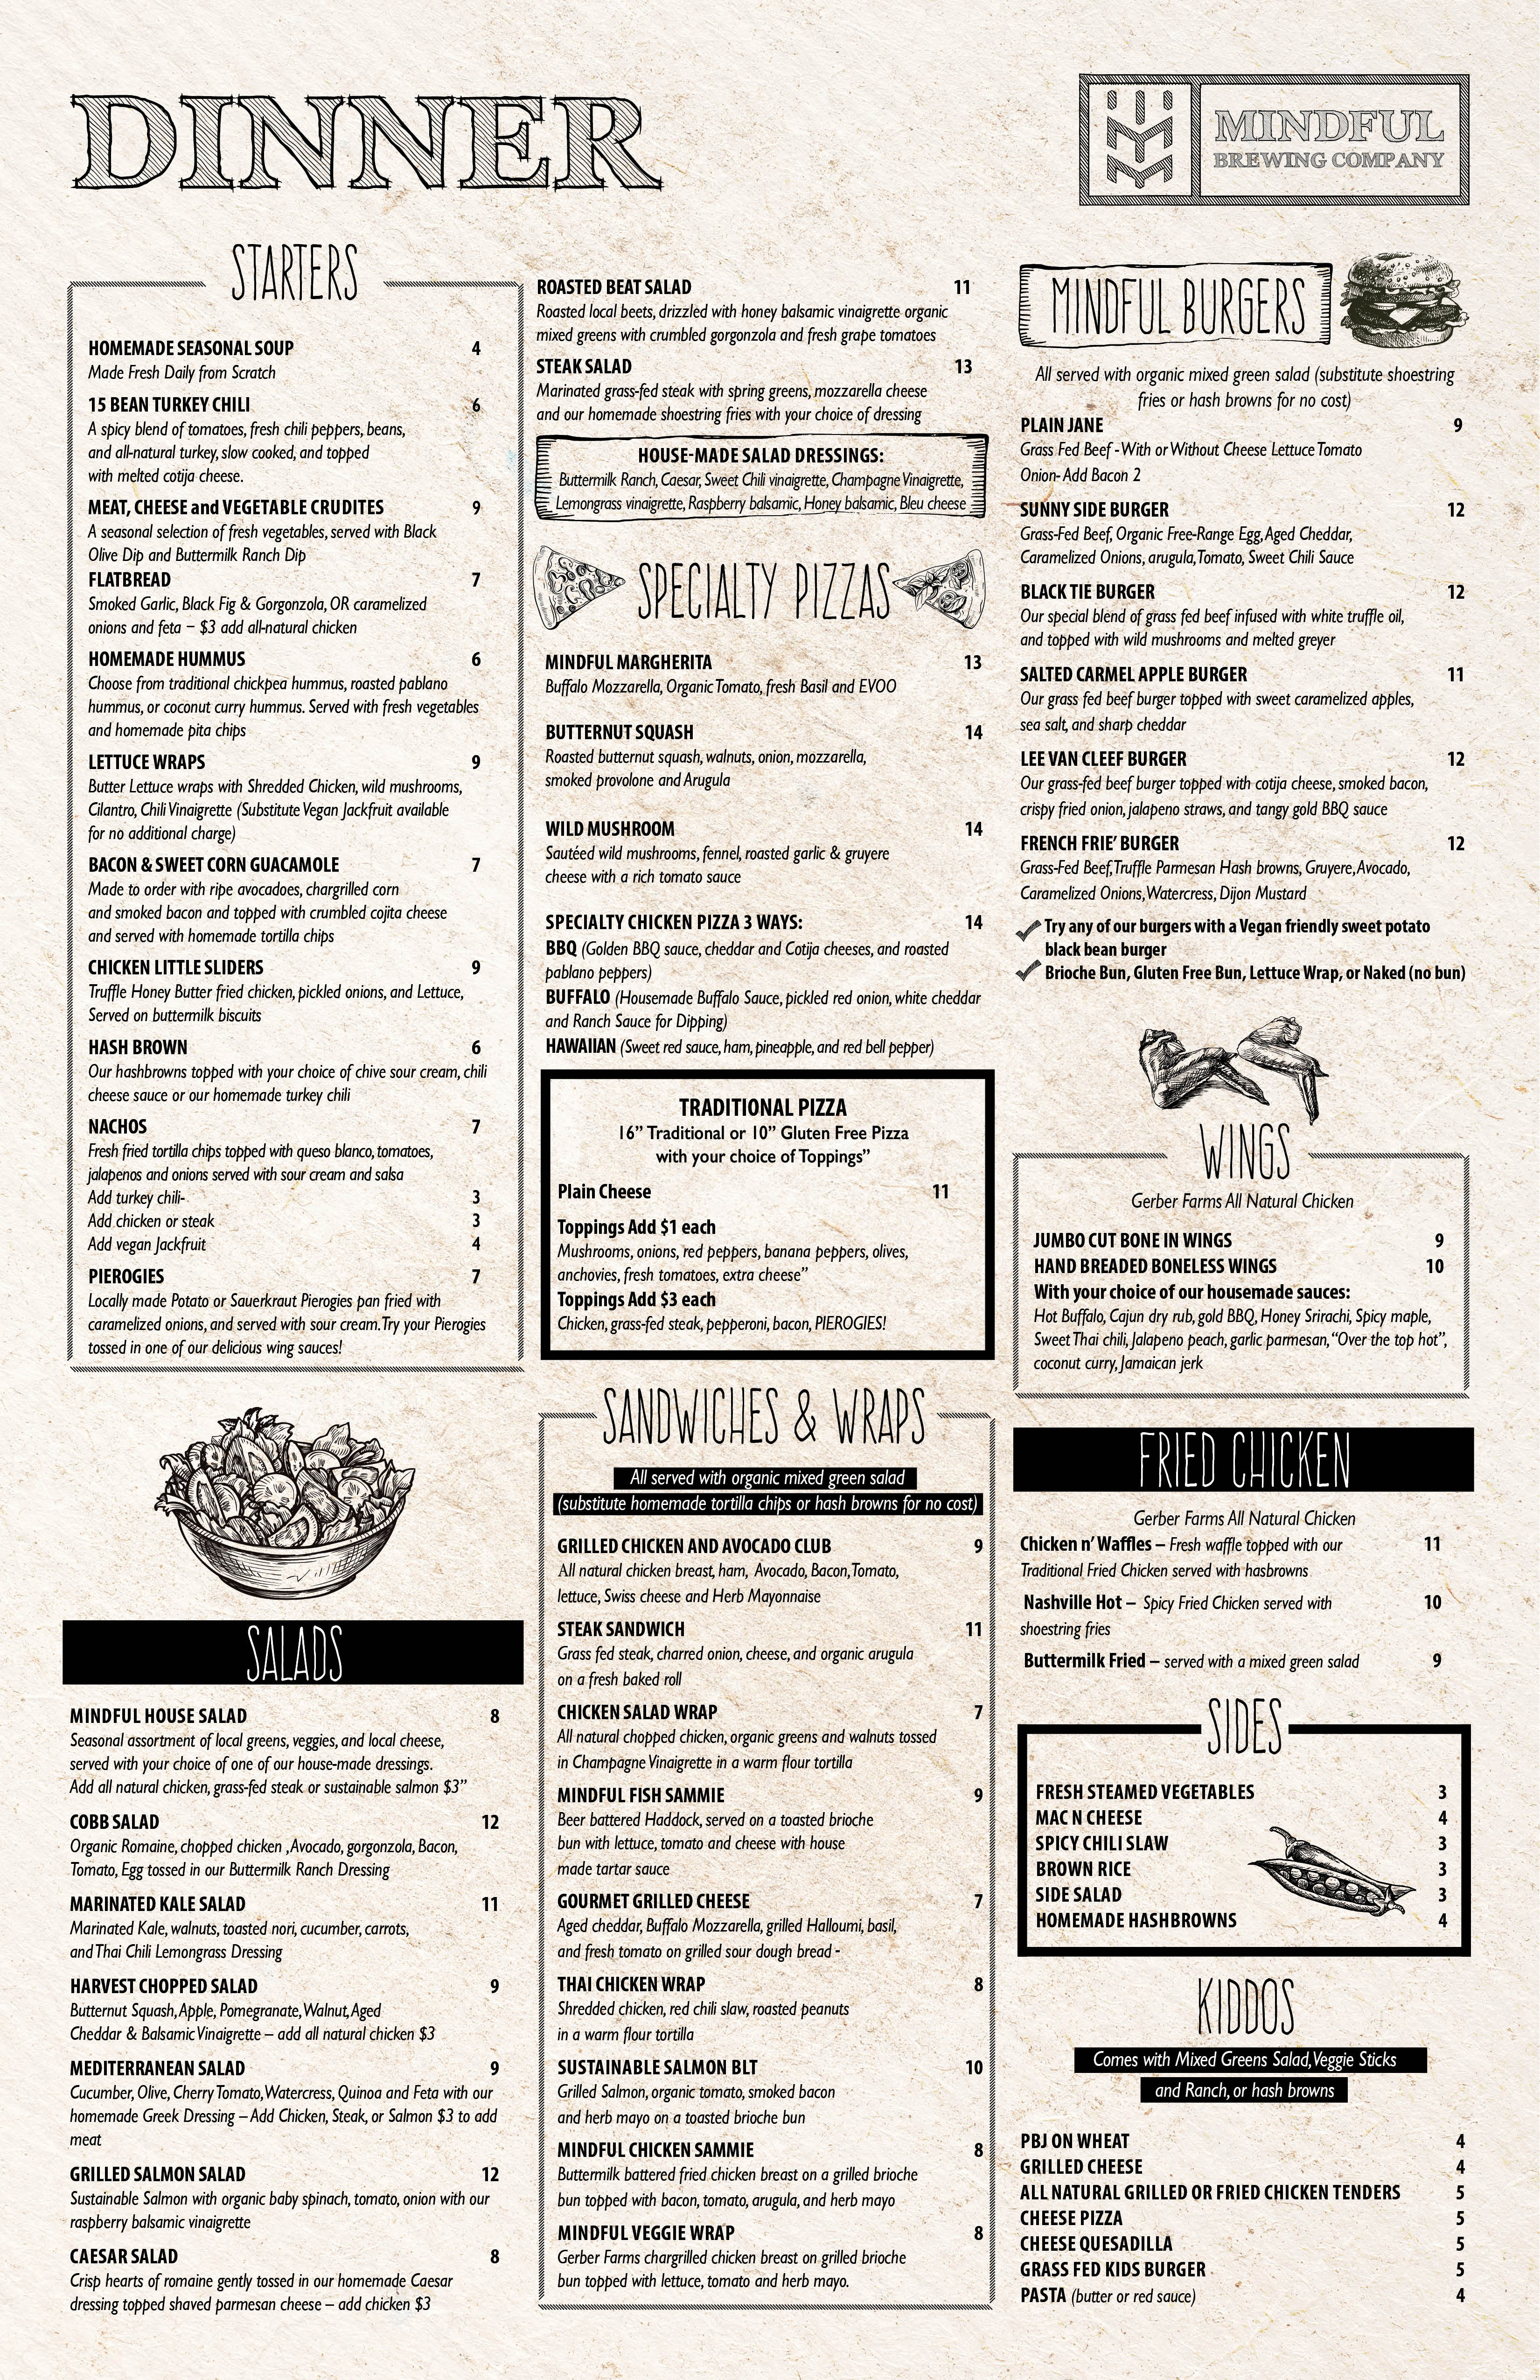 Design Menu layout for new craft brewery and restaurant